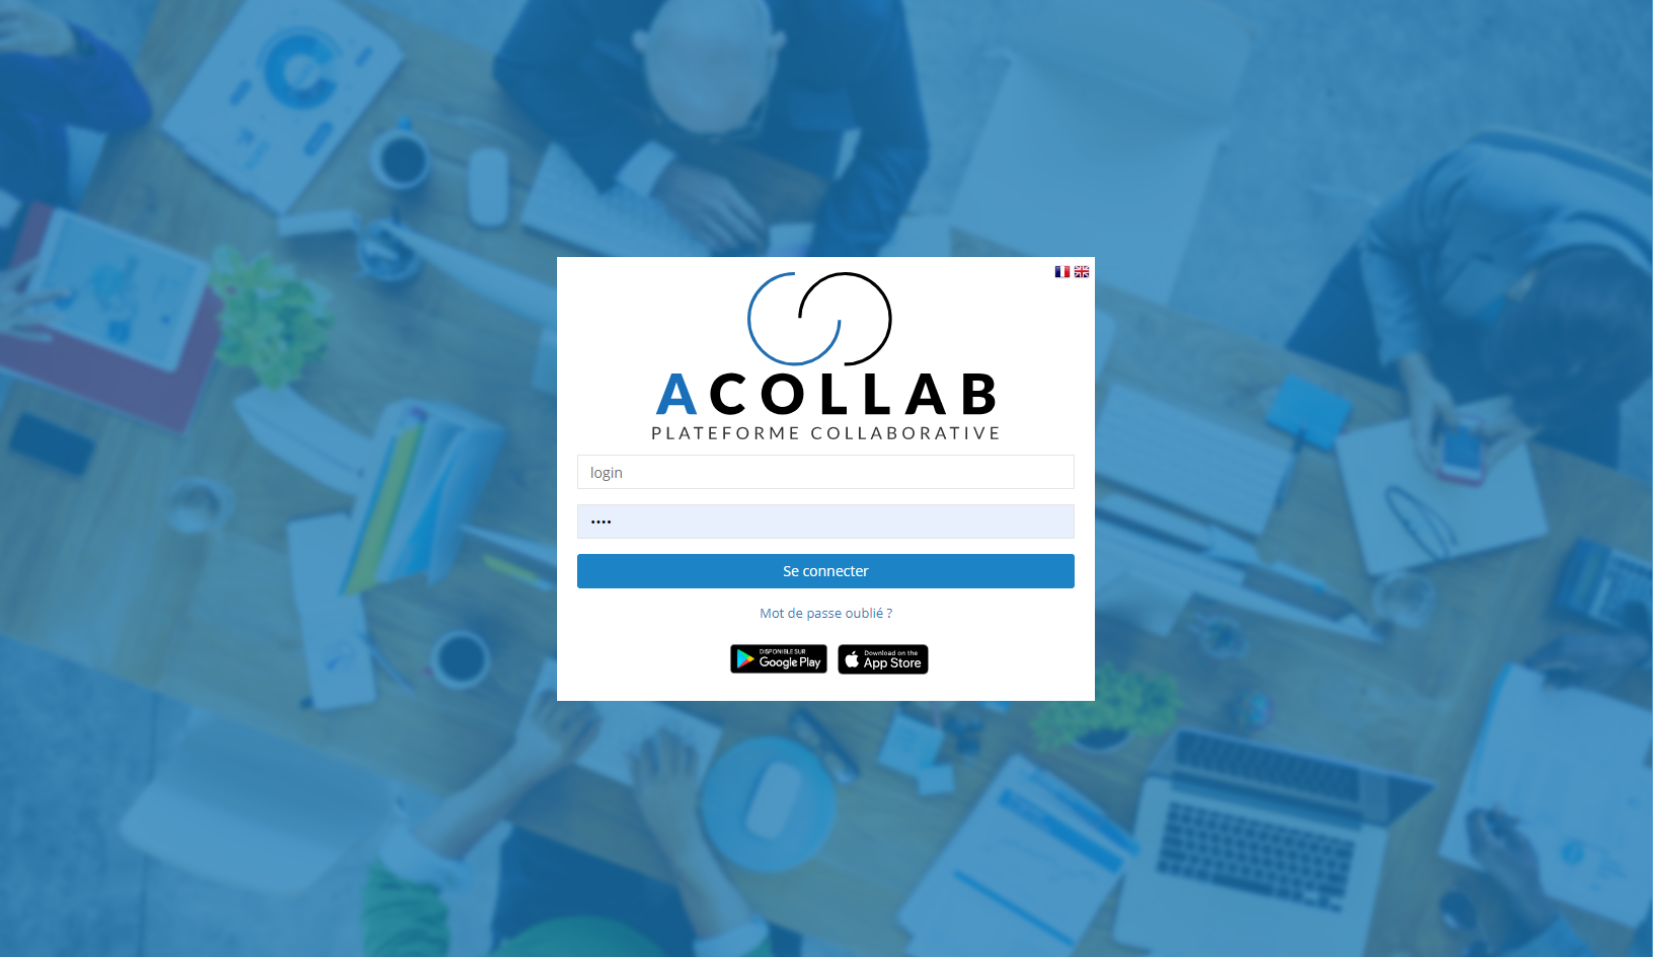 Plateforme collaborative Acollab - Login